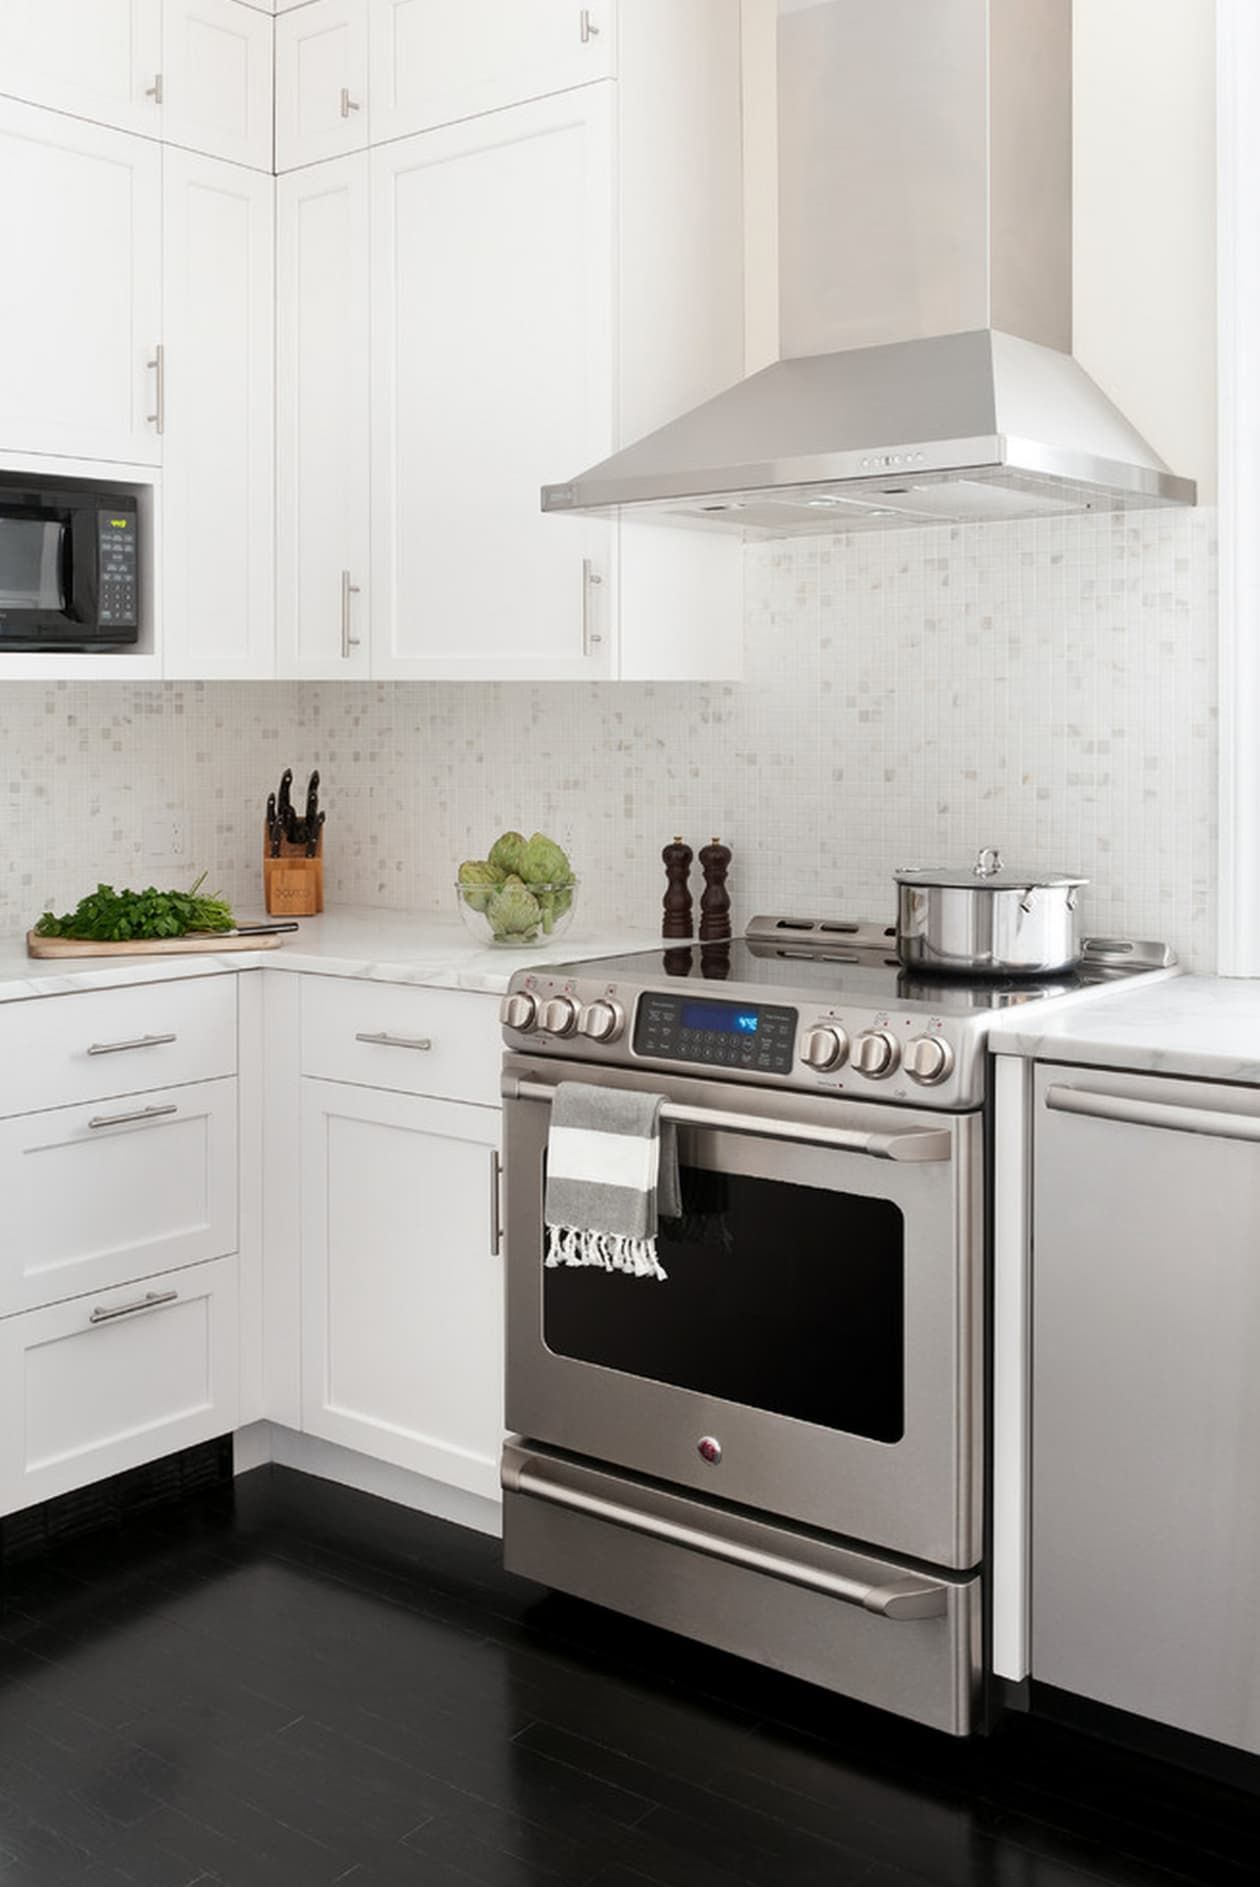 How Much Does It Cost To Install A Range Hood Or Vent Kitchen Vent Kitchen Vent Hood Kitchen Stove